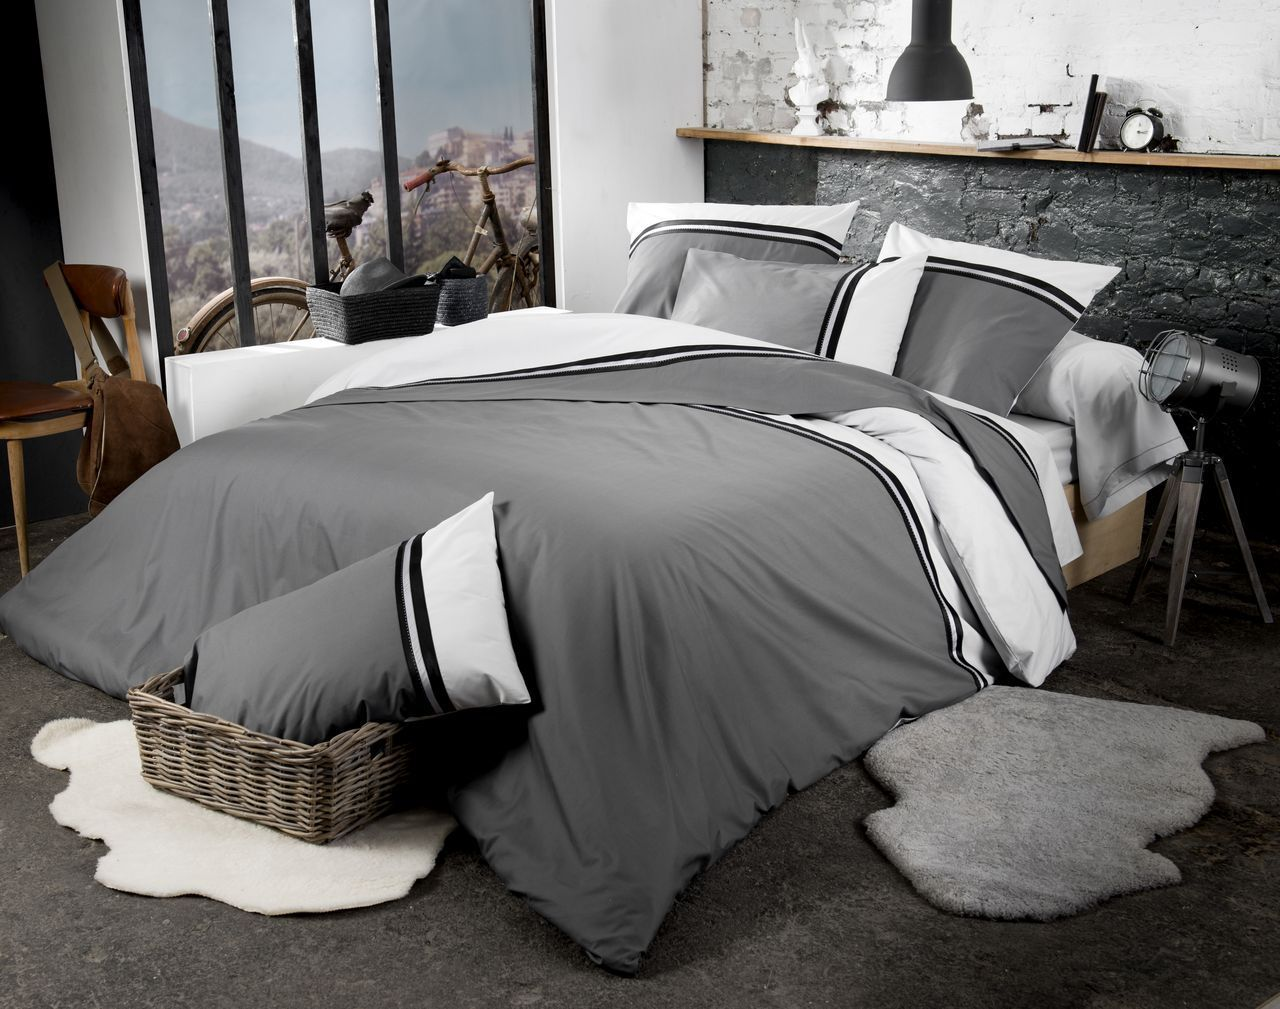 Drap plat smoking percale blanc gris galon satin noir 240x310 - Difference entre drap plat et housse de couette ...